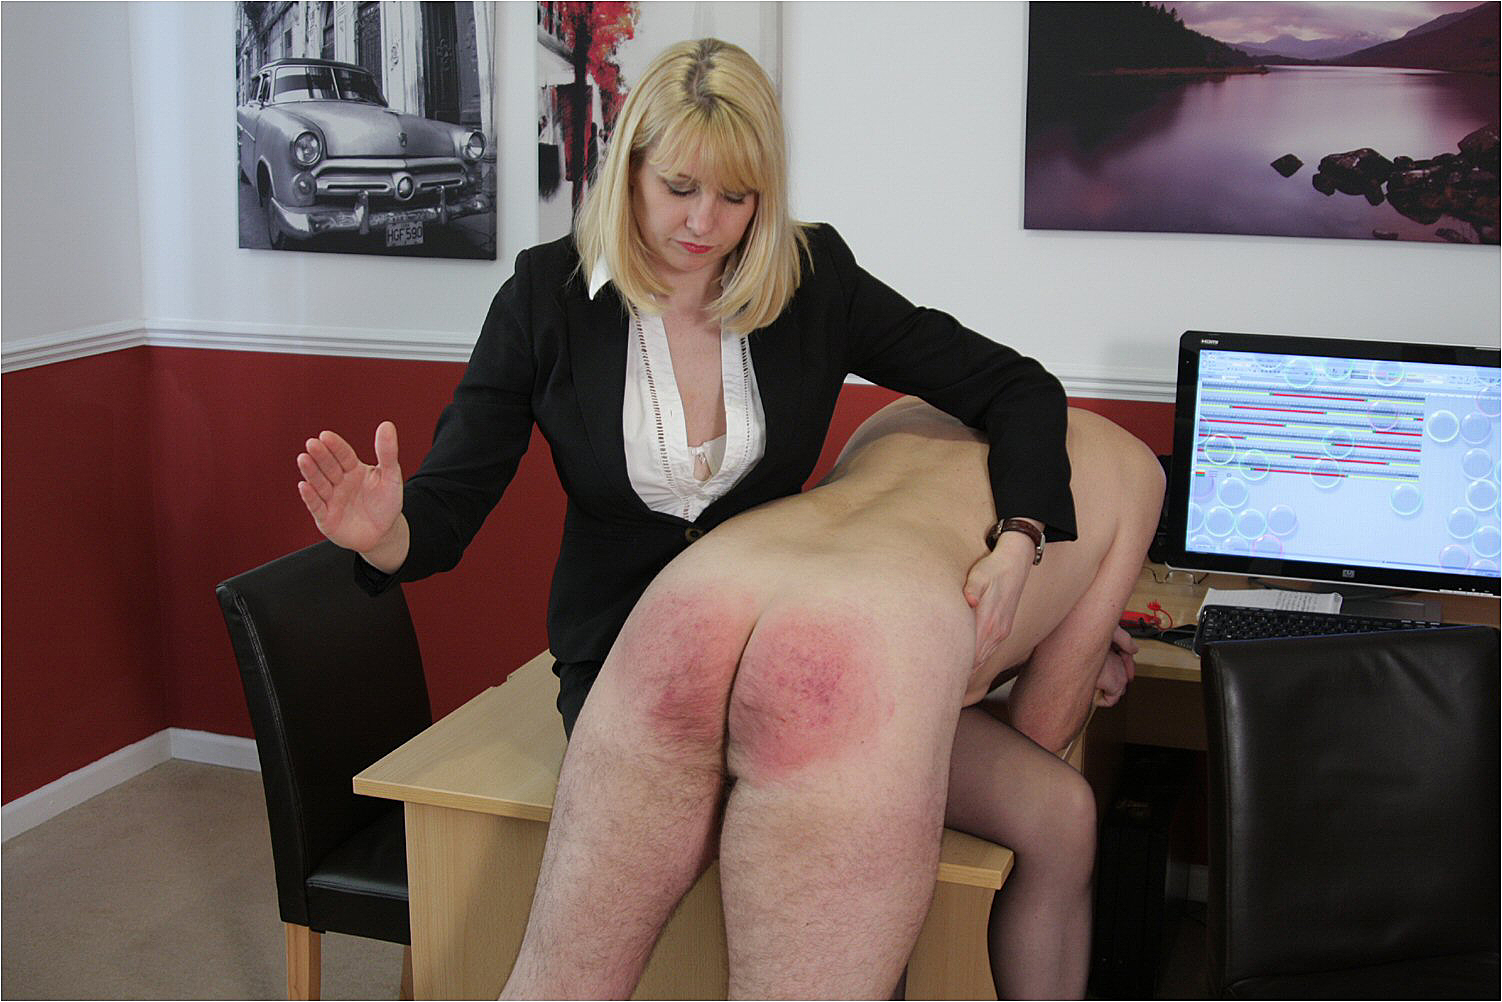 Mmmmmmmmm! Love ladies who spank men bought